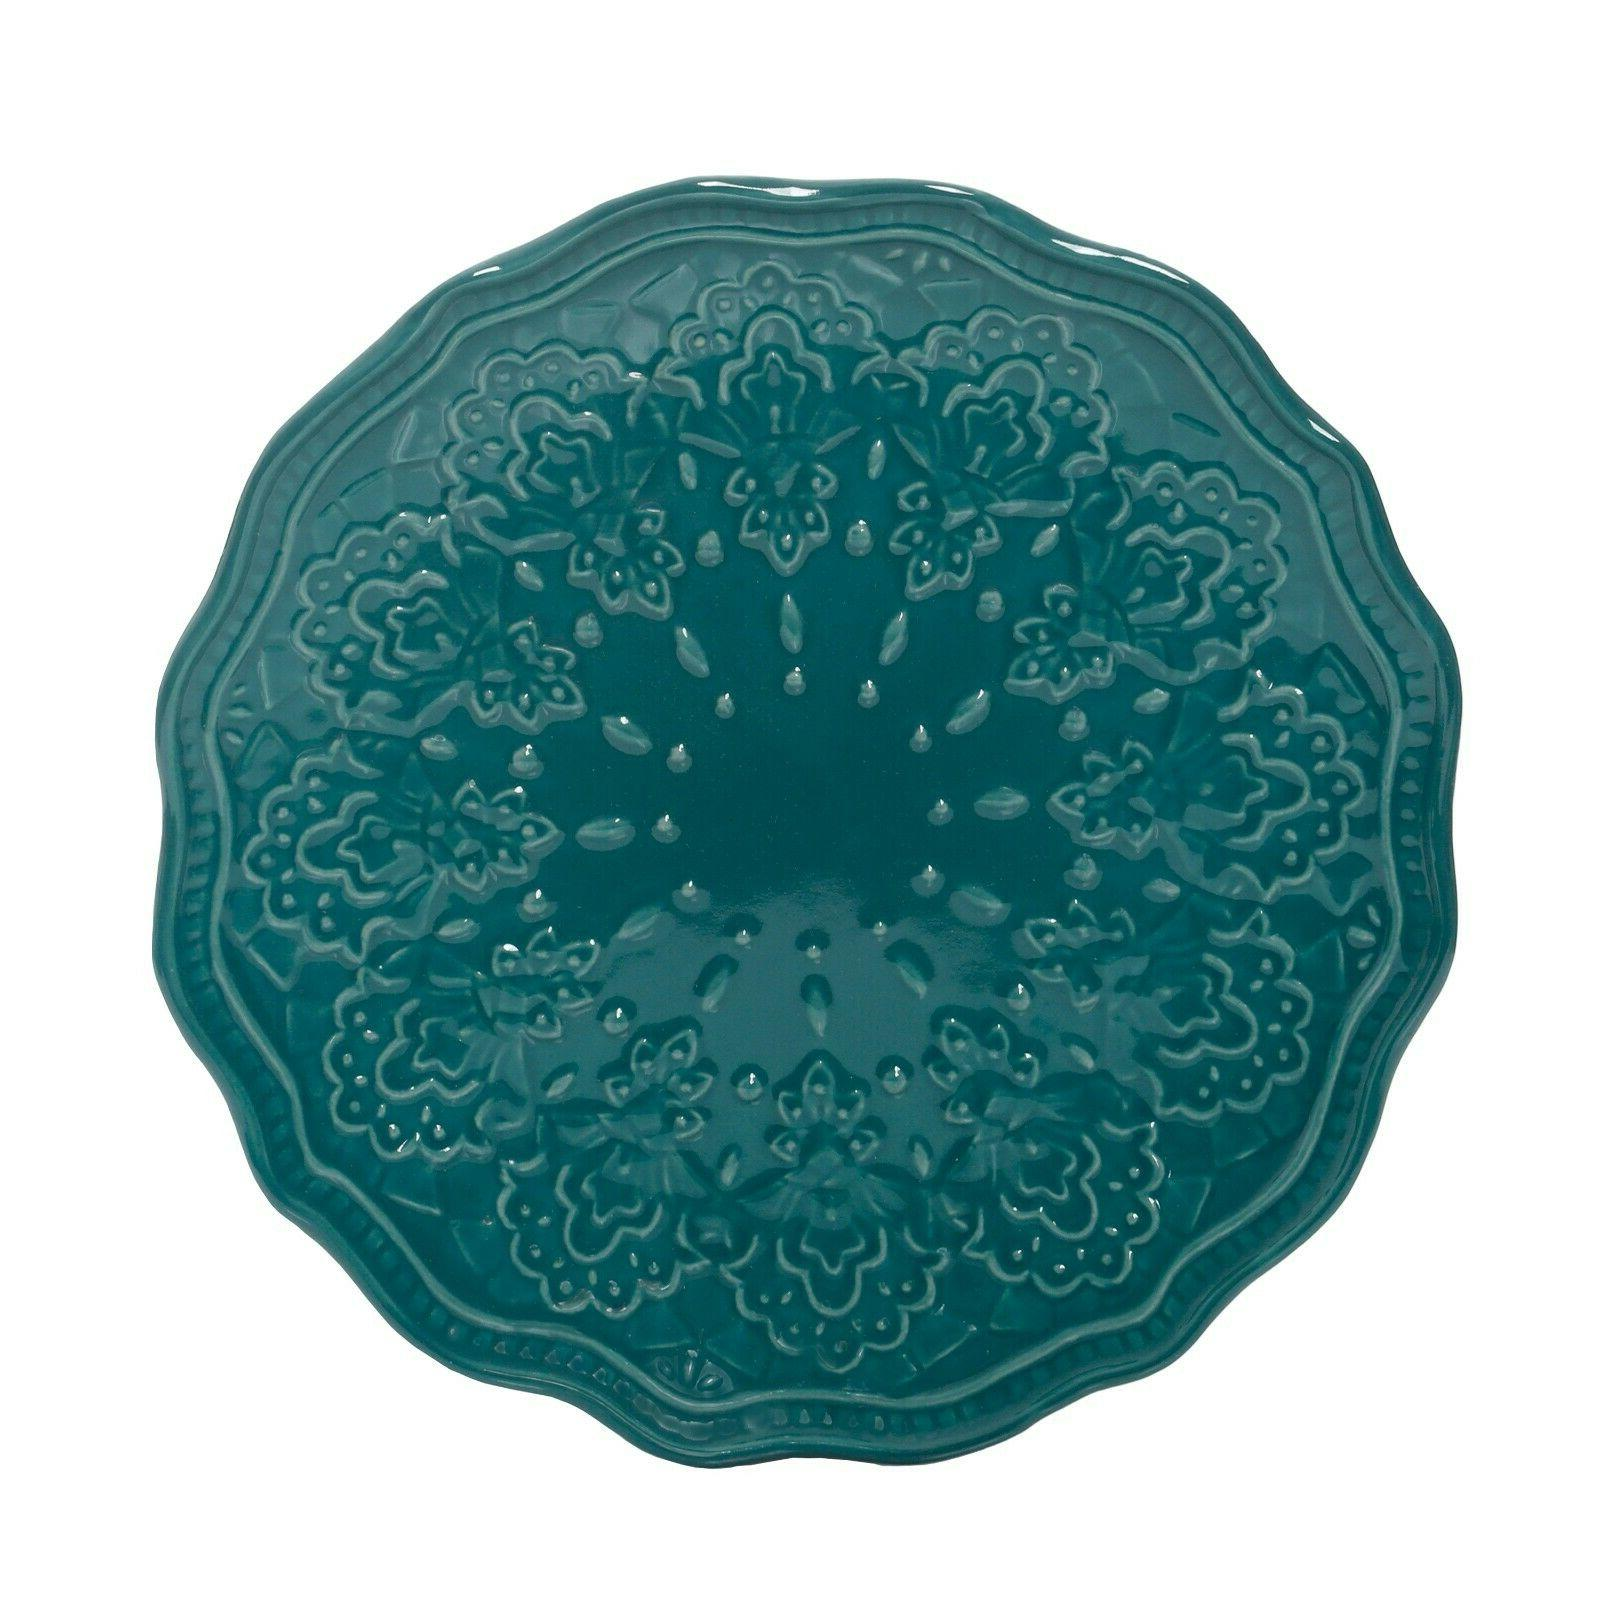 The Pioneer Woman Farmhouse Lace Dinnerware Teal